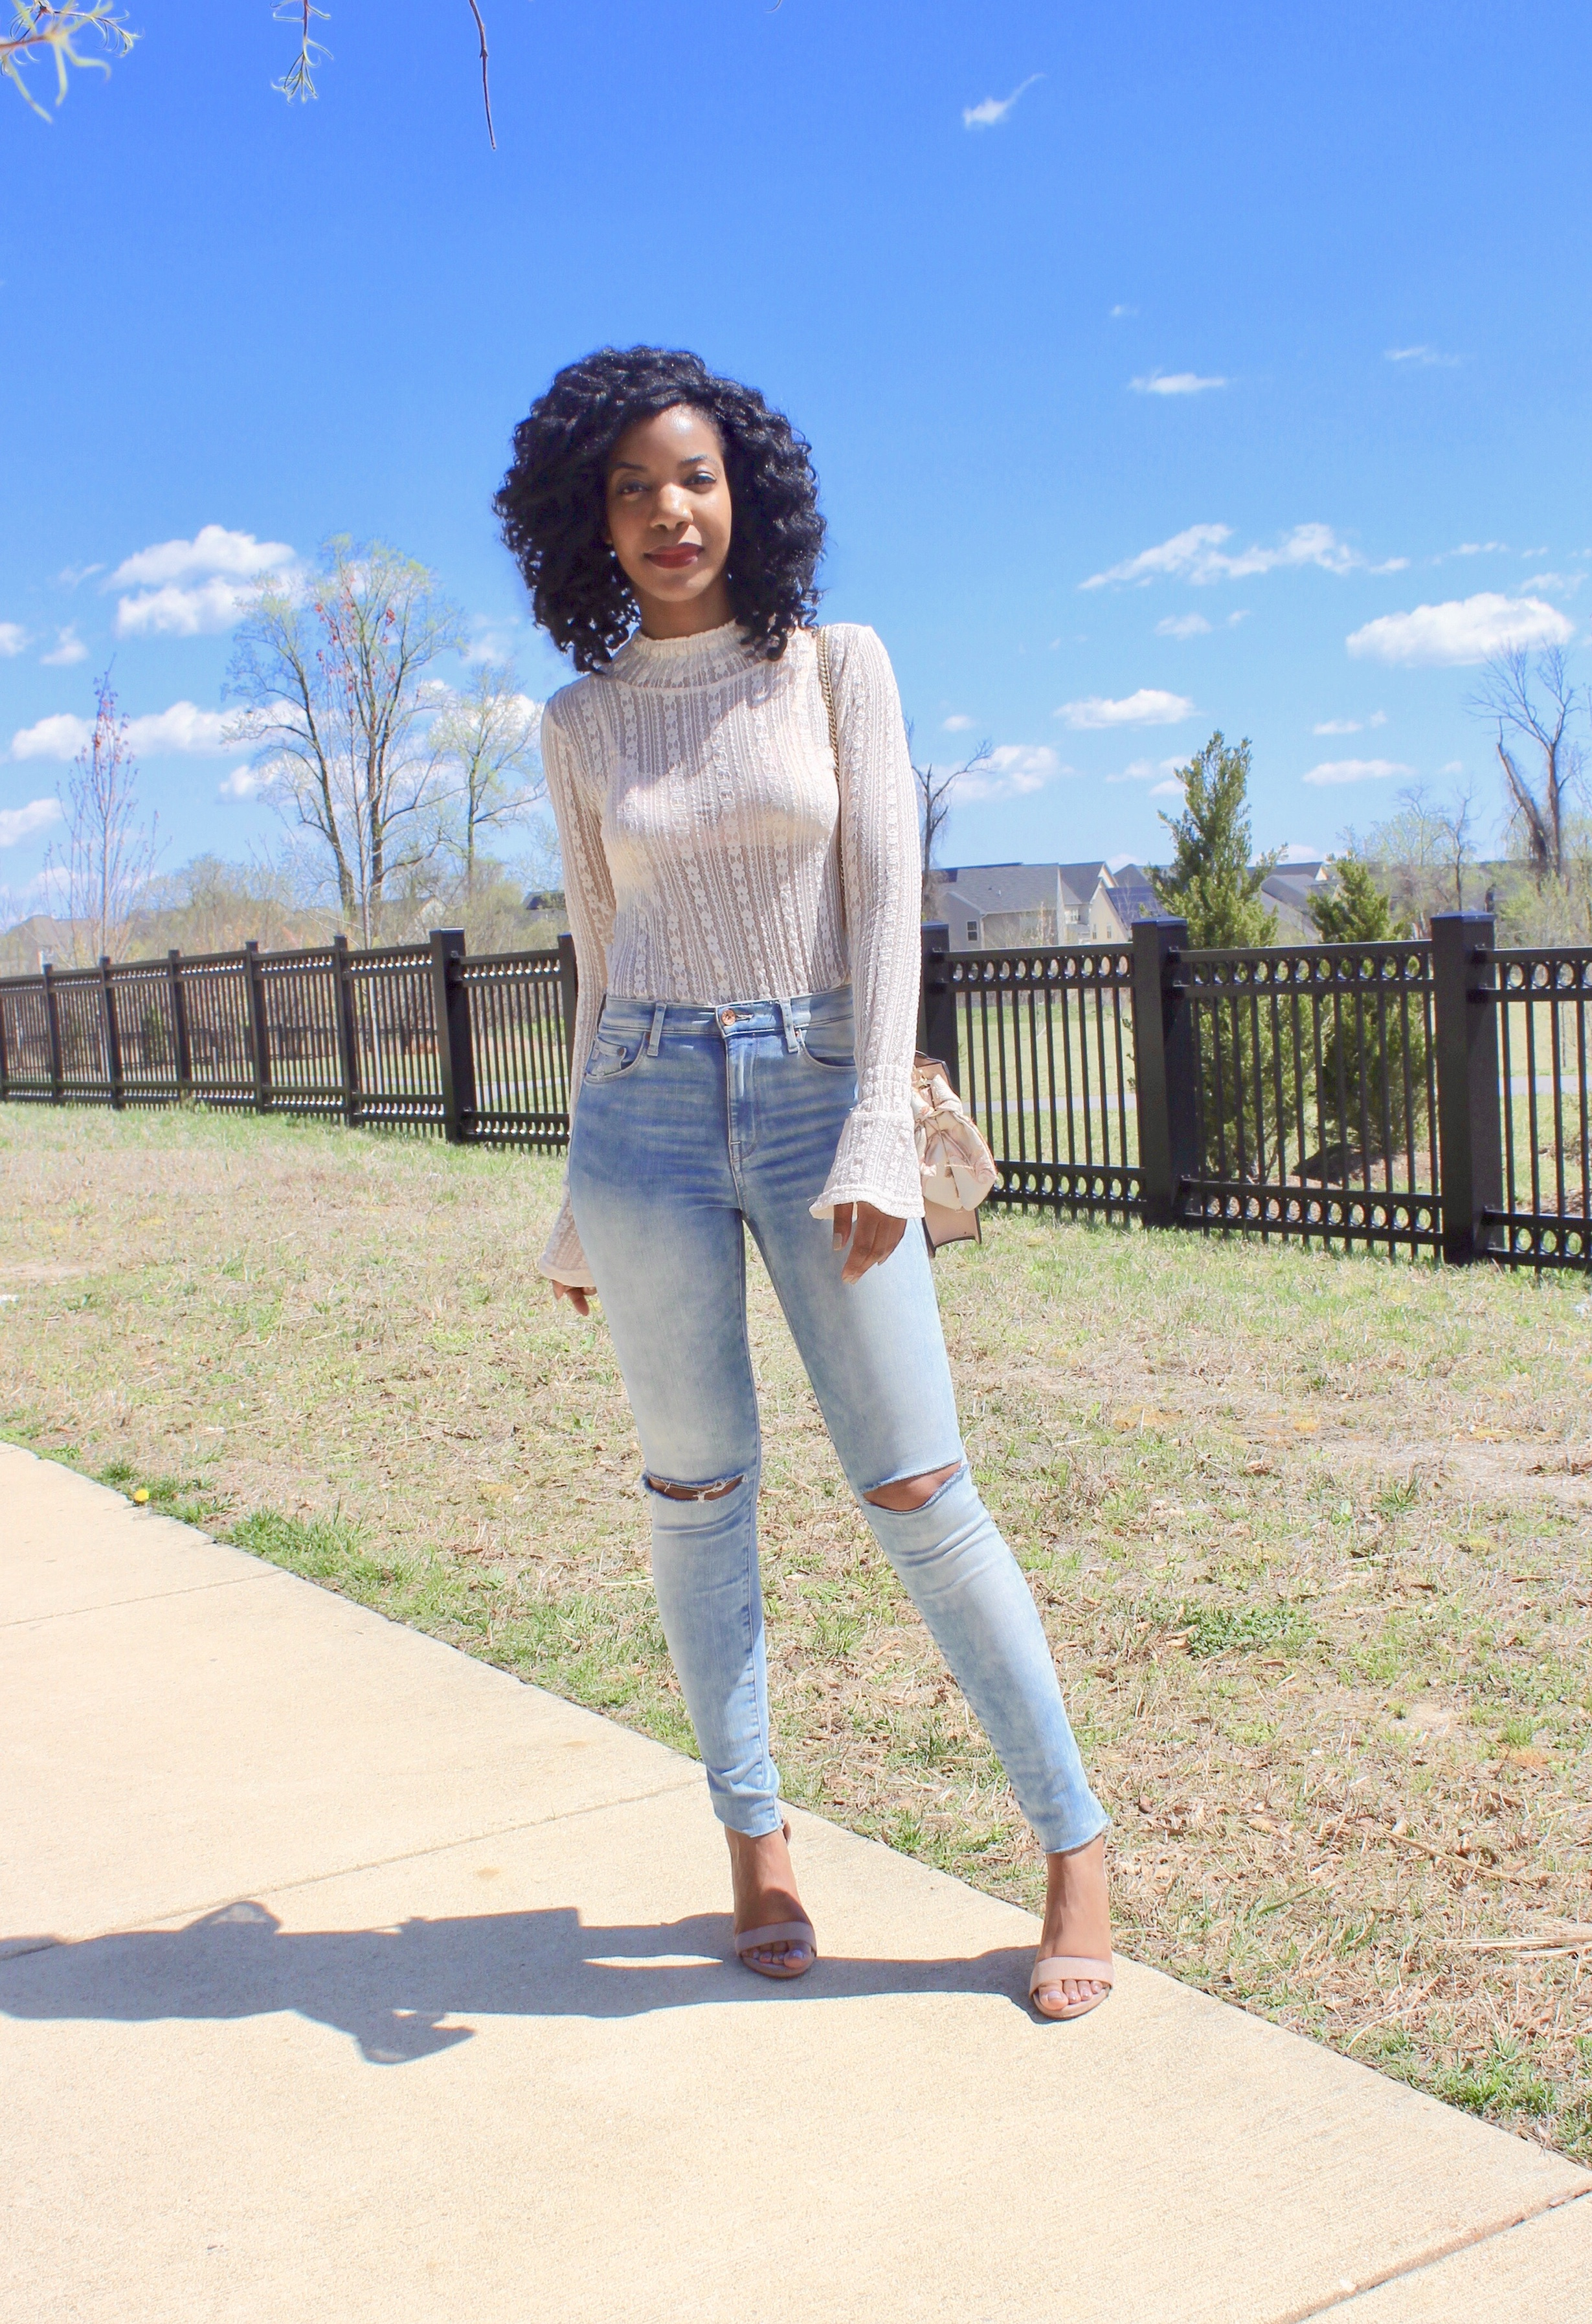 SHEIN Flounce Sleeve Sheer Lace Top Without Bra, http://bit.ly/2FhOVFn, H&M Ripped Jeans, DSW Nude Heels